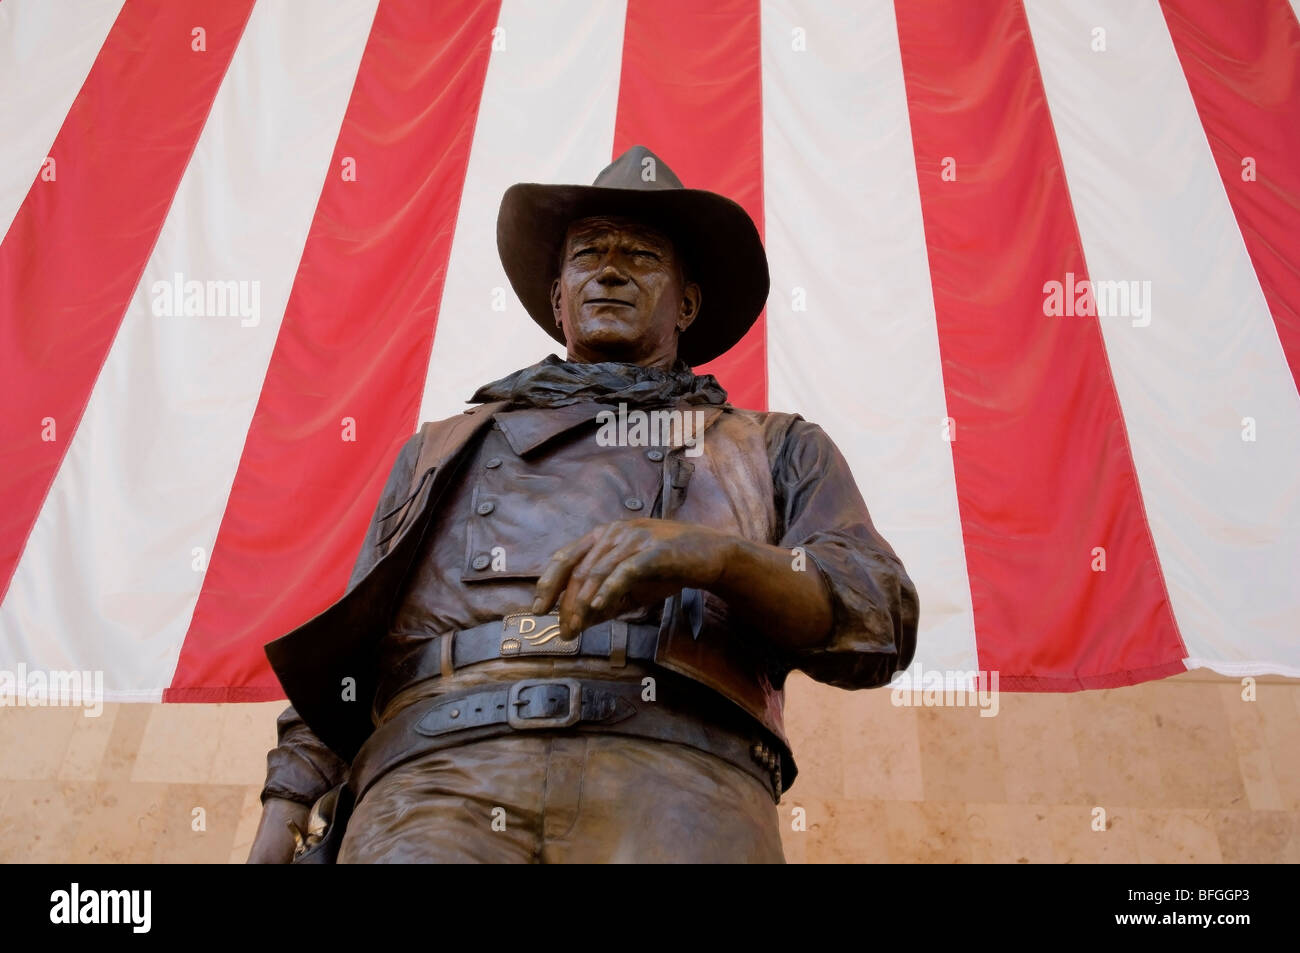 Statue of John Wayne in front of an American Flag located in the terminal at John Wayne Airport in Orange County, - Stock Image